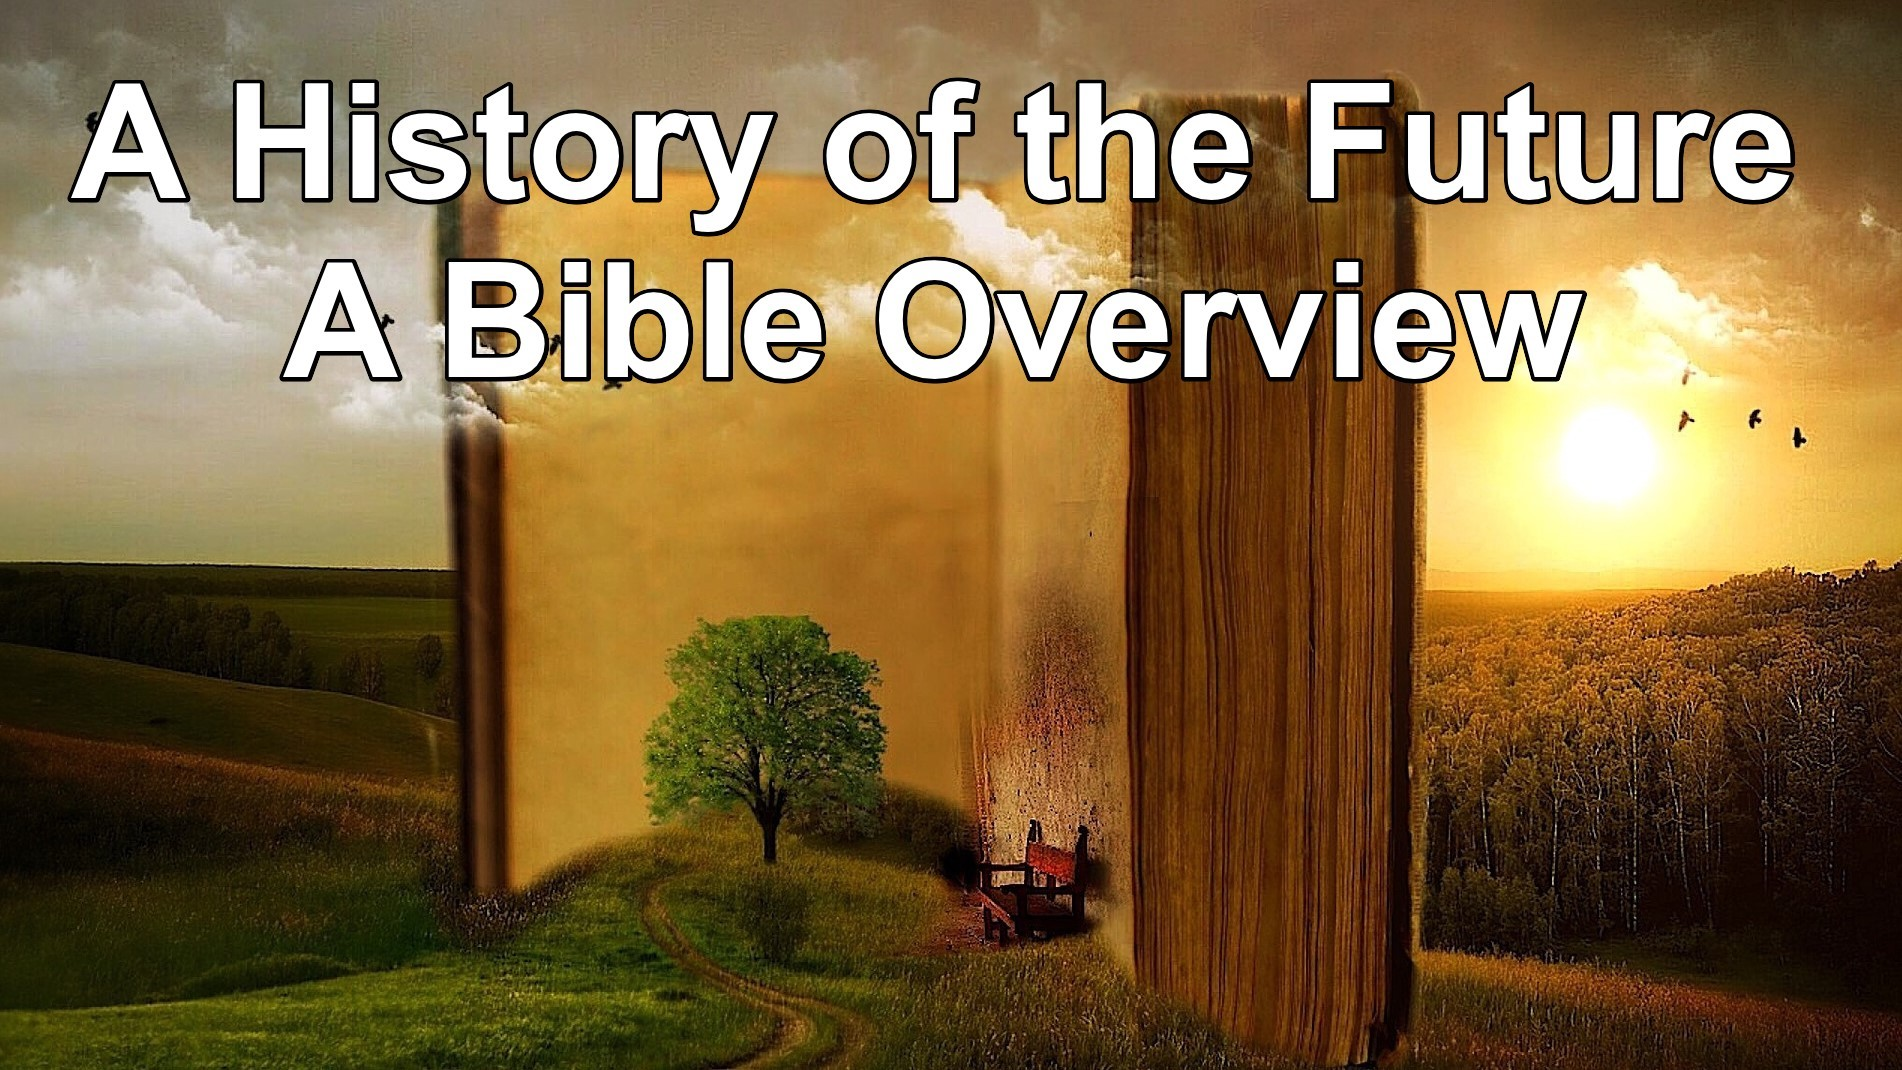 A Bible Overview - from Genesis to Revelation